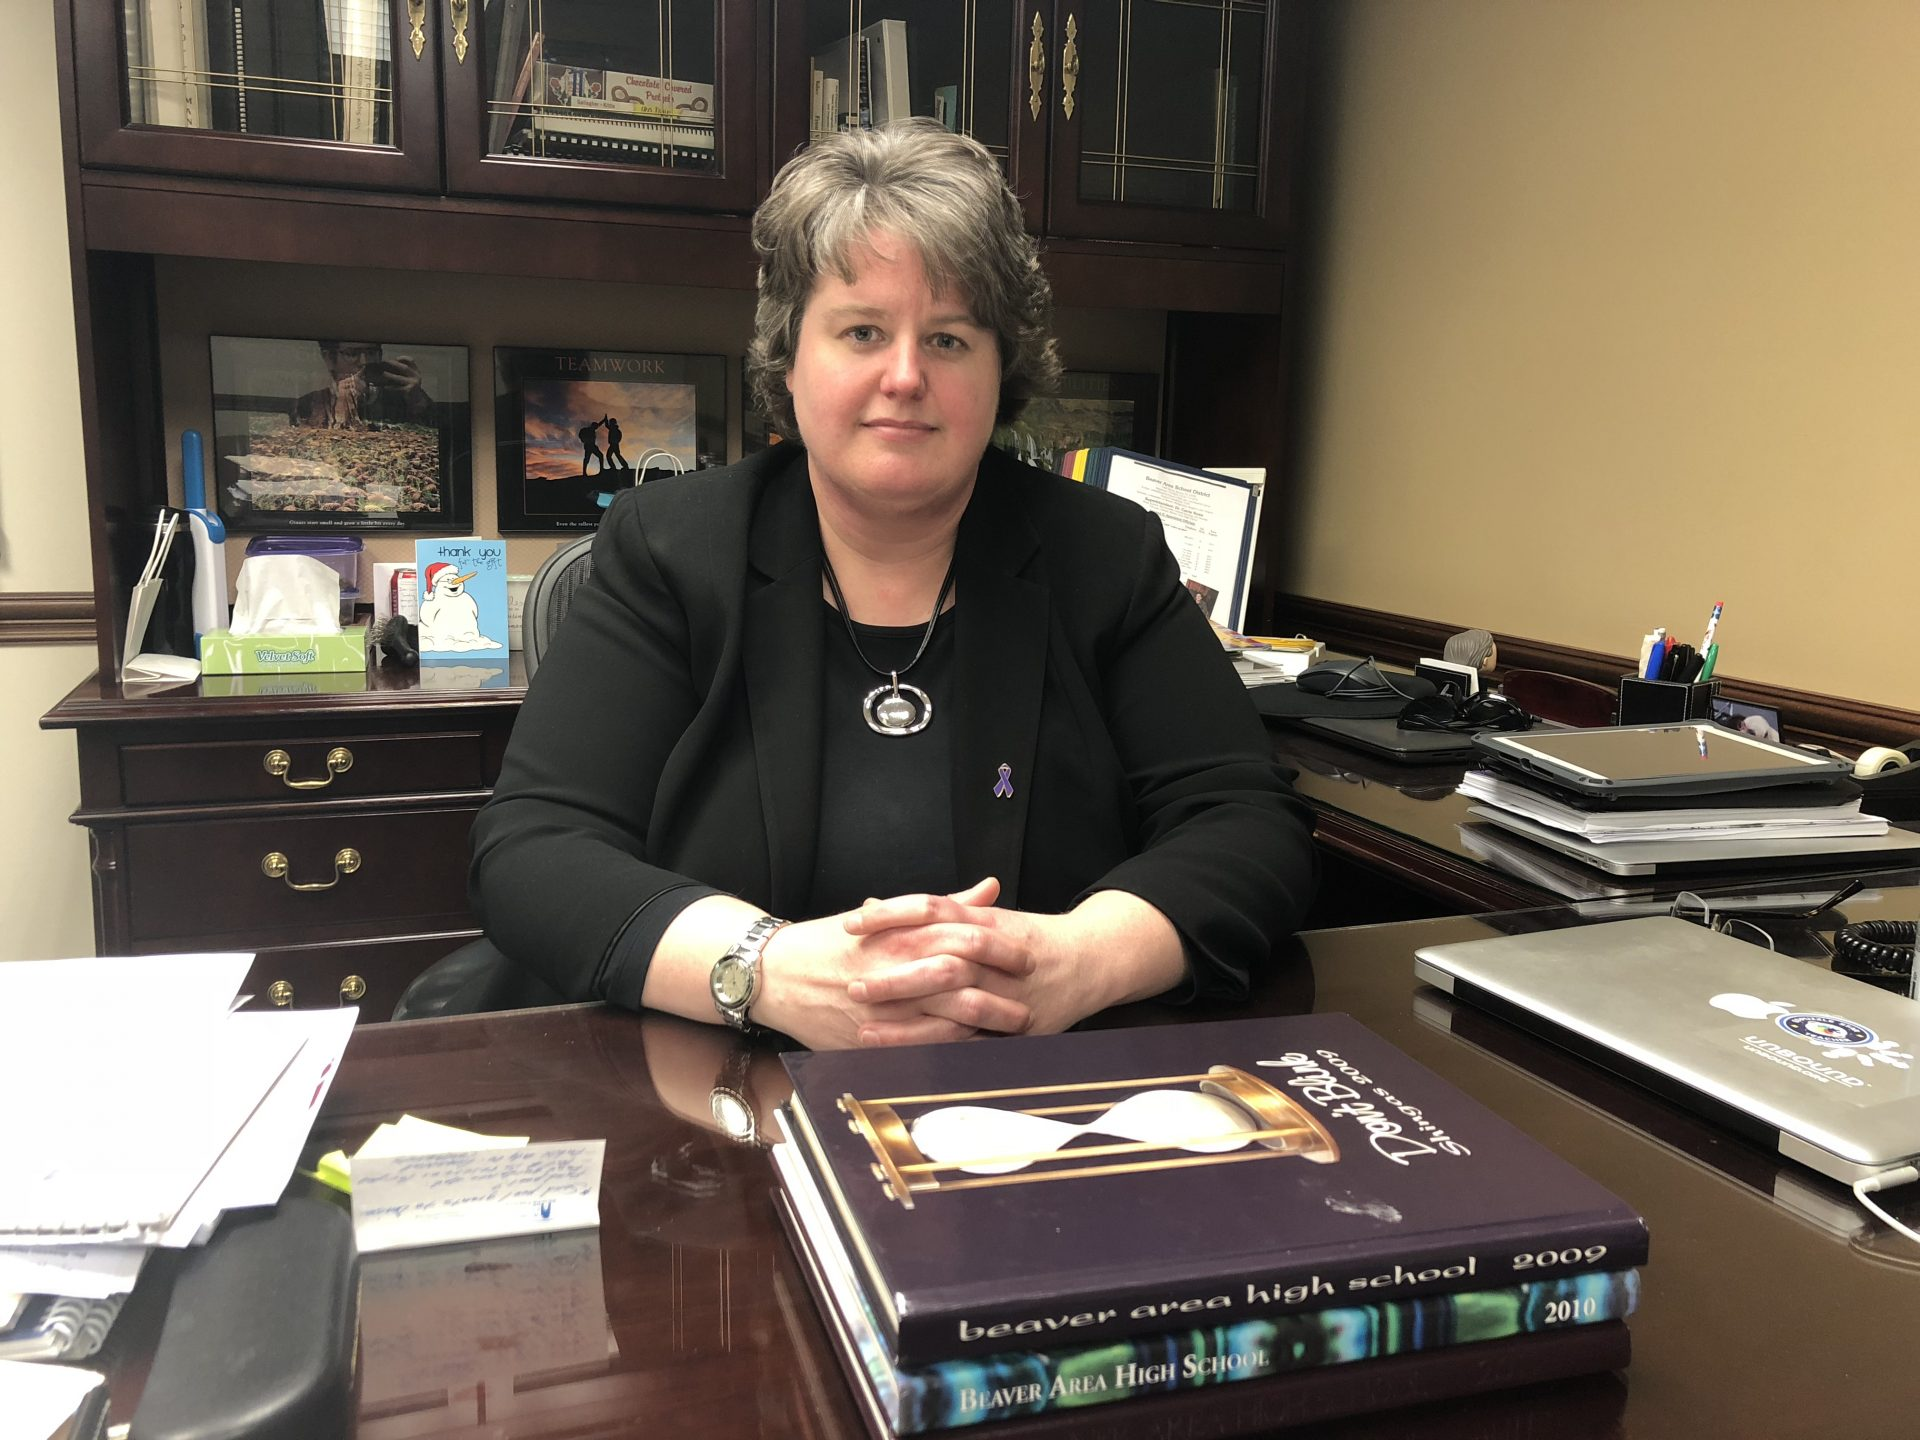 Carrie Rowe, superintendent of the Beaver Area School District, is seen in her office on Dec. 13, 2018.